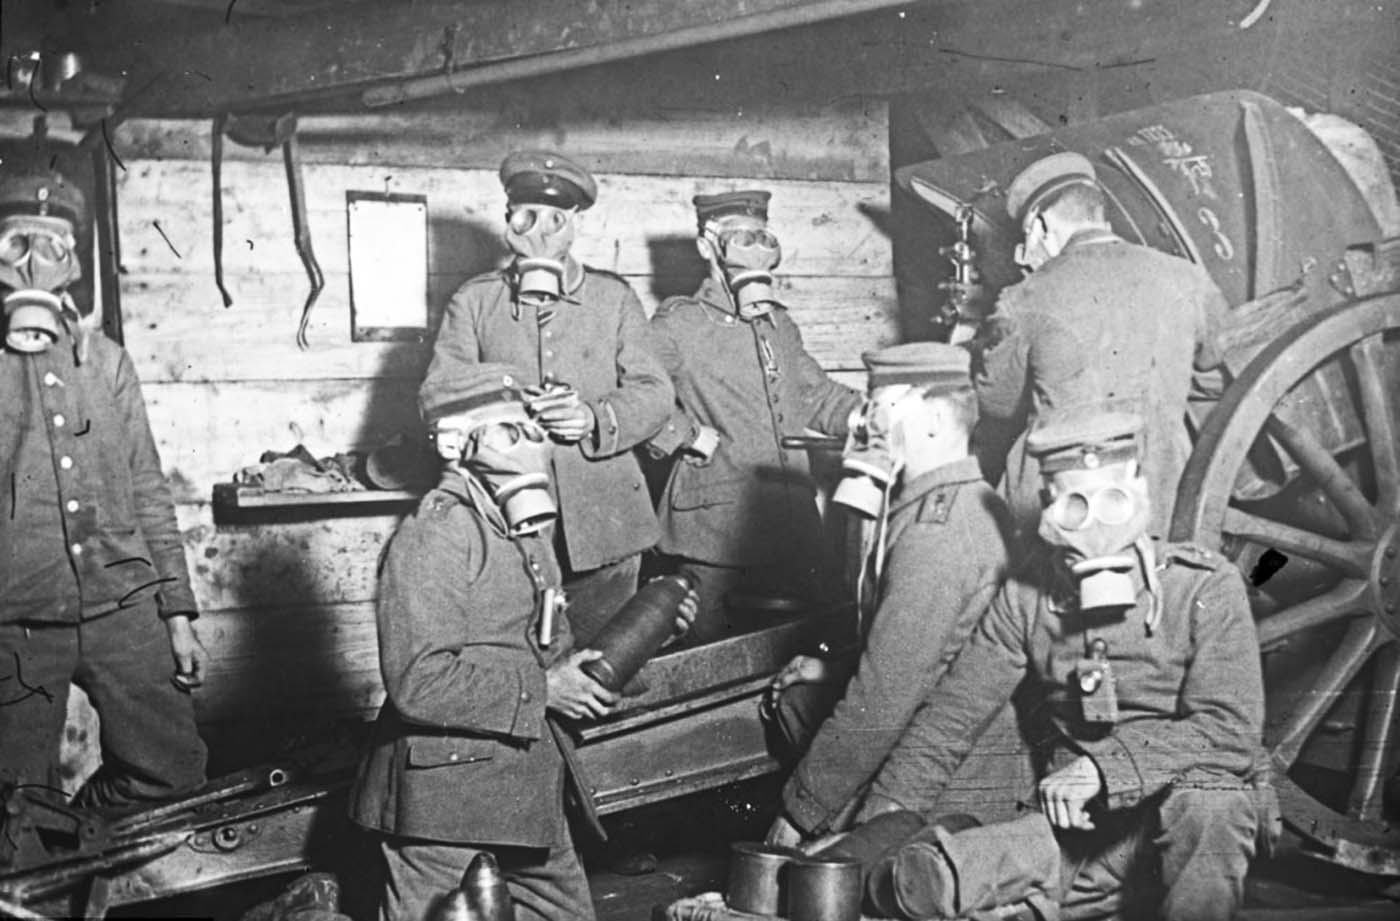 Constantly under threat: Gas attacks were a frequent menace in the Somme during the war so this group wear masks as they load shells into their gun in 1916.